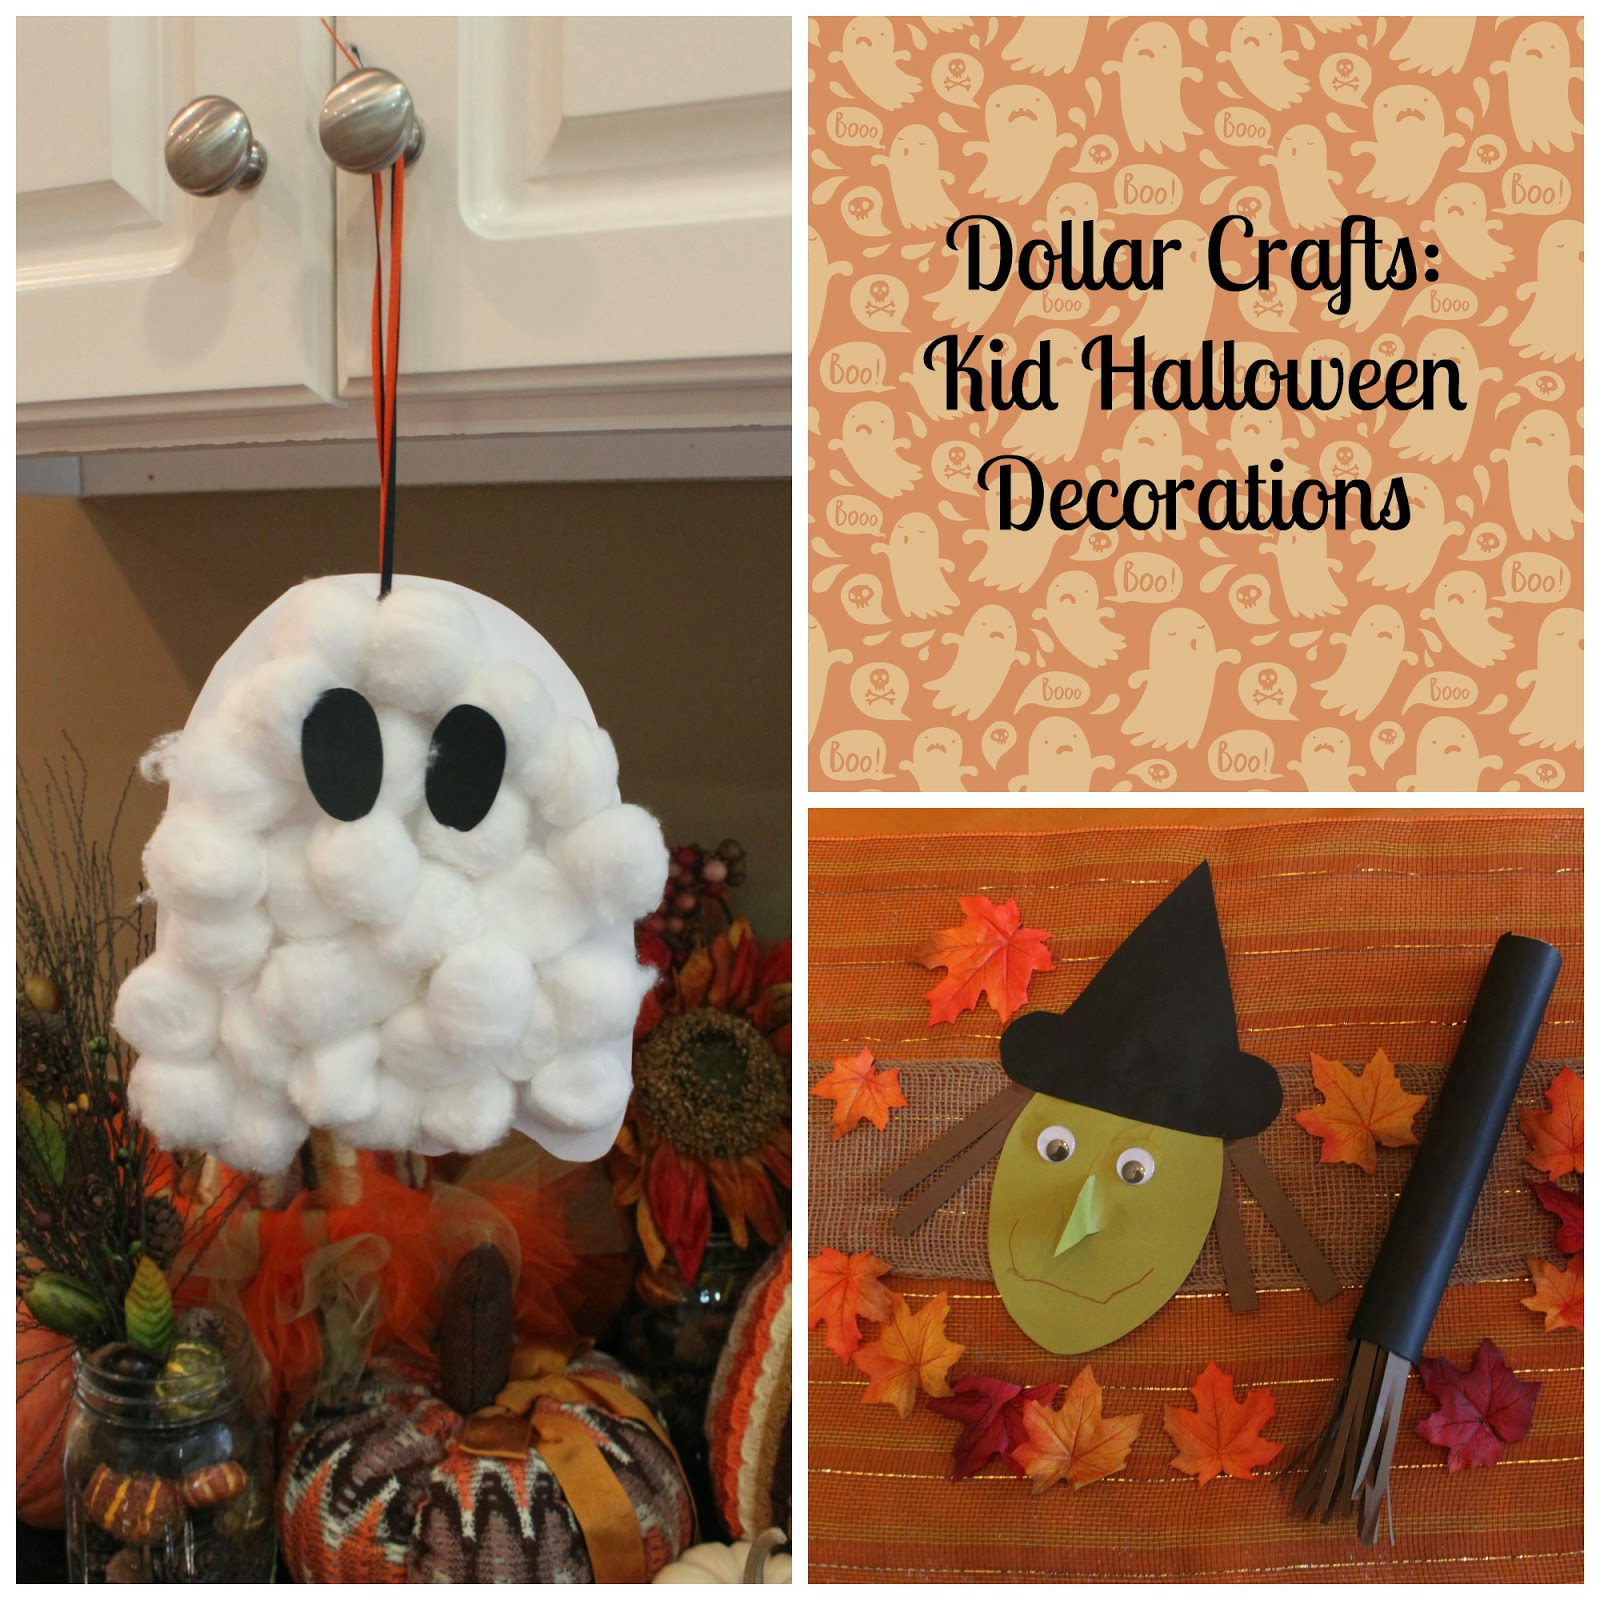 avas kindergarten halloween party that i didnt have anything planned sidney really wanted to make a ghost and a witch heres what we came up with - Kid Halloween Decorations